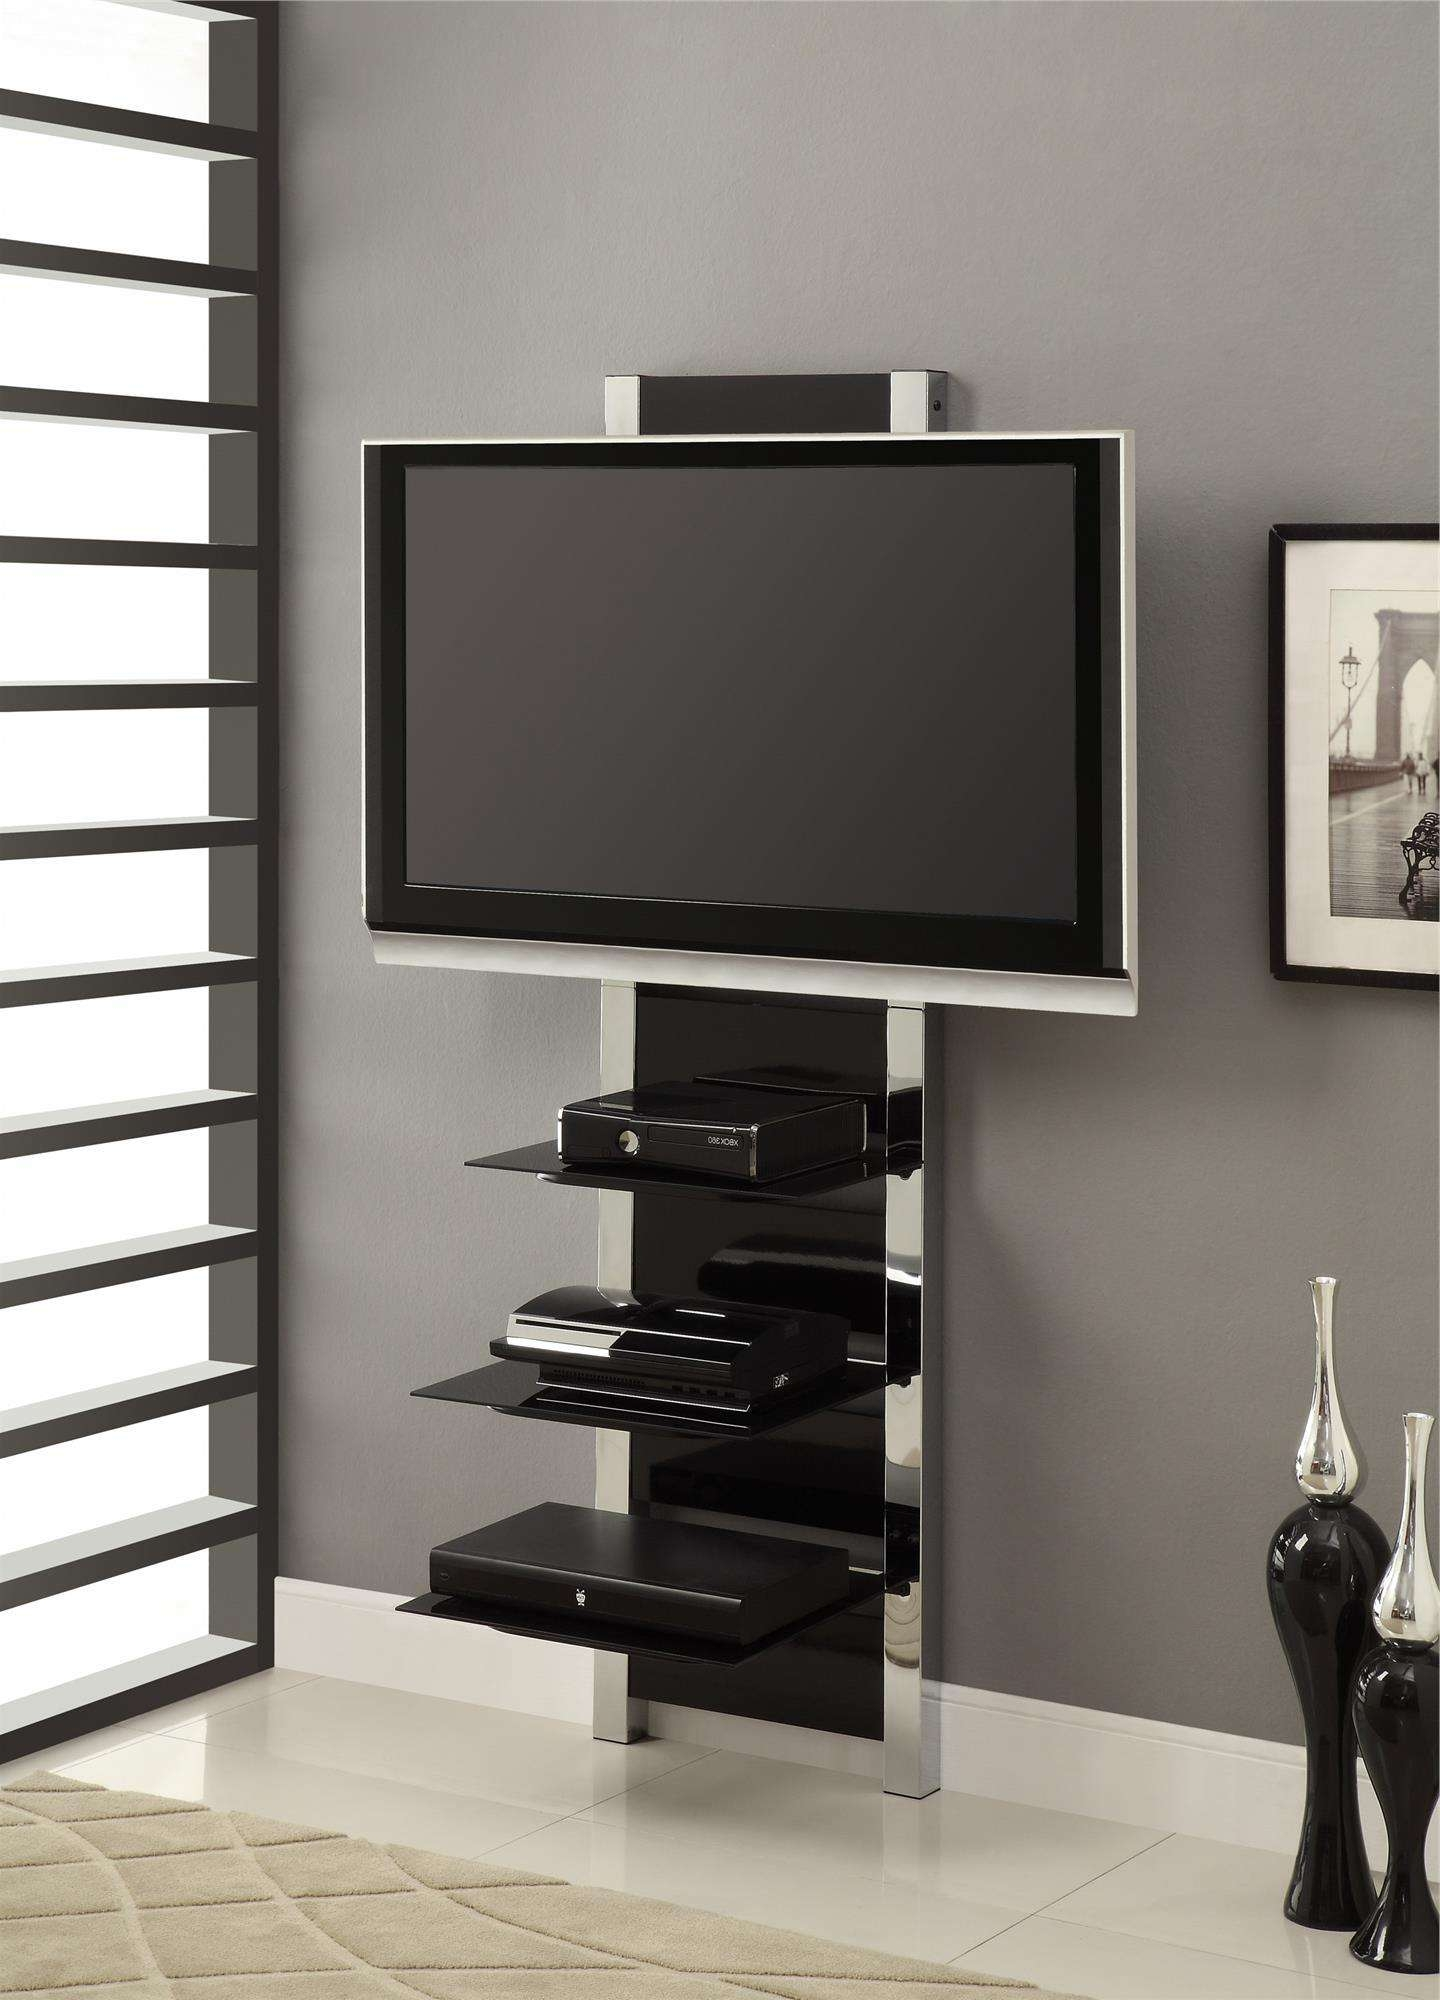 Ameriwood Furniture | Altra Furniture Altramount Modern Tv Stand Throughout Skinny Tv Stands (View 1 of 15)